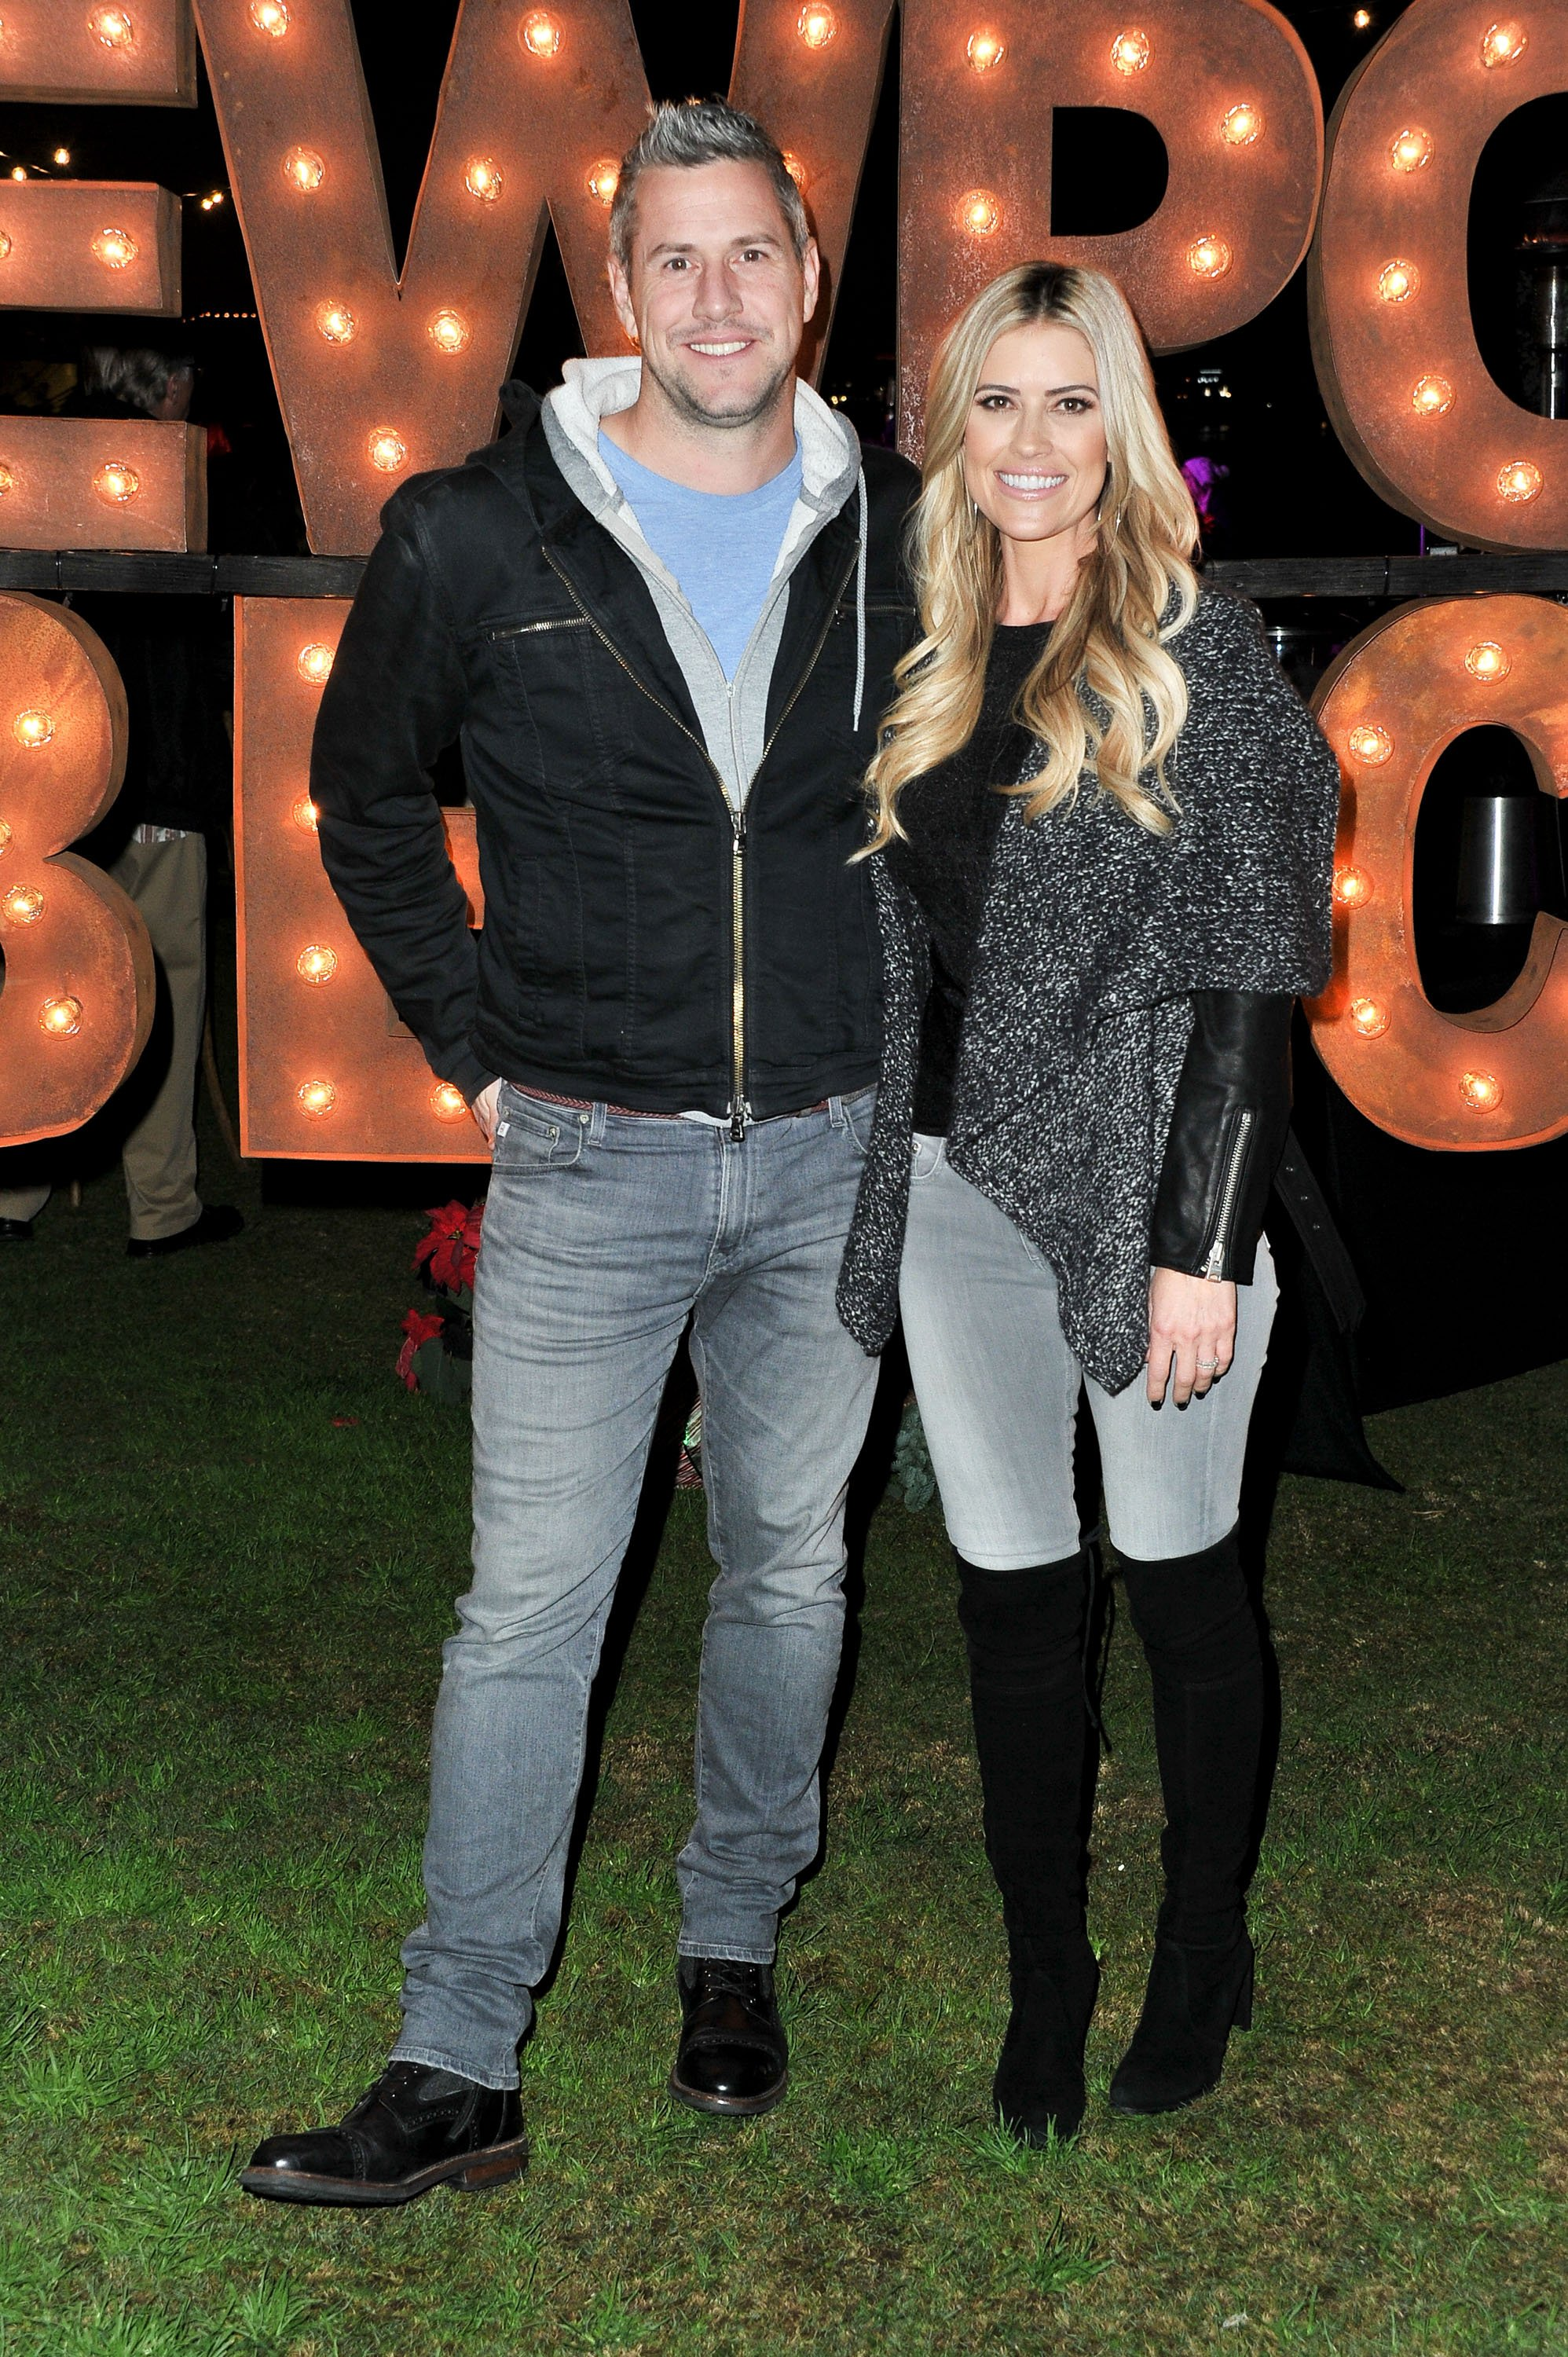 Ant Anstead and Christina Anstead attend the Newport Beach Christmas Boat Parade in Newport Beach, California on December 18, 2019 | Photo: Getty Images